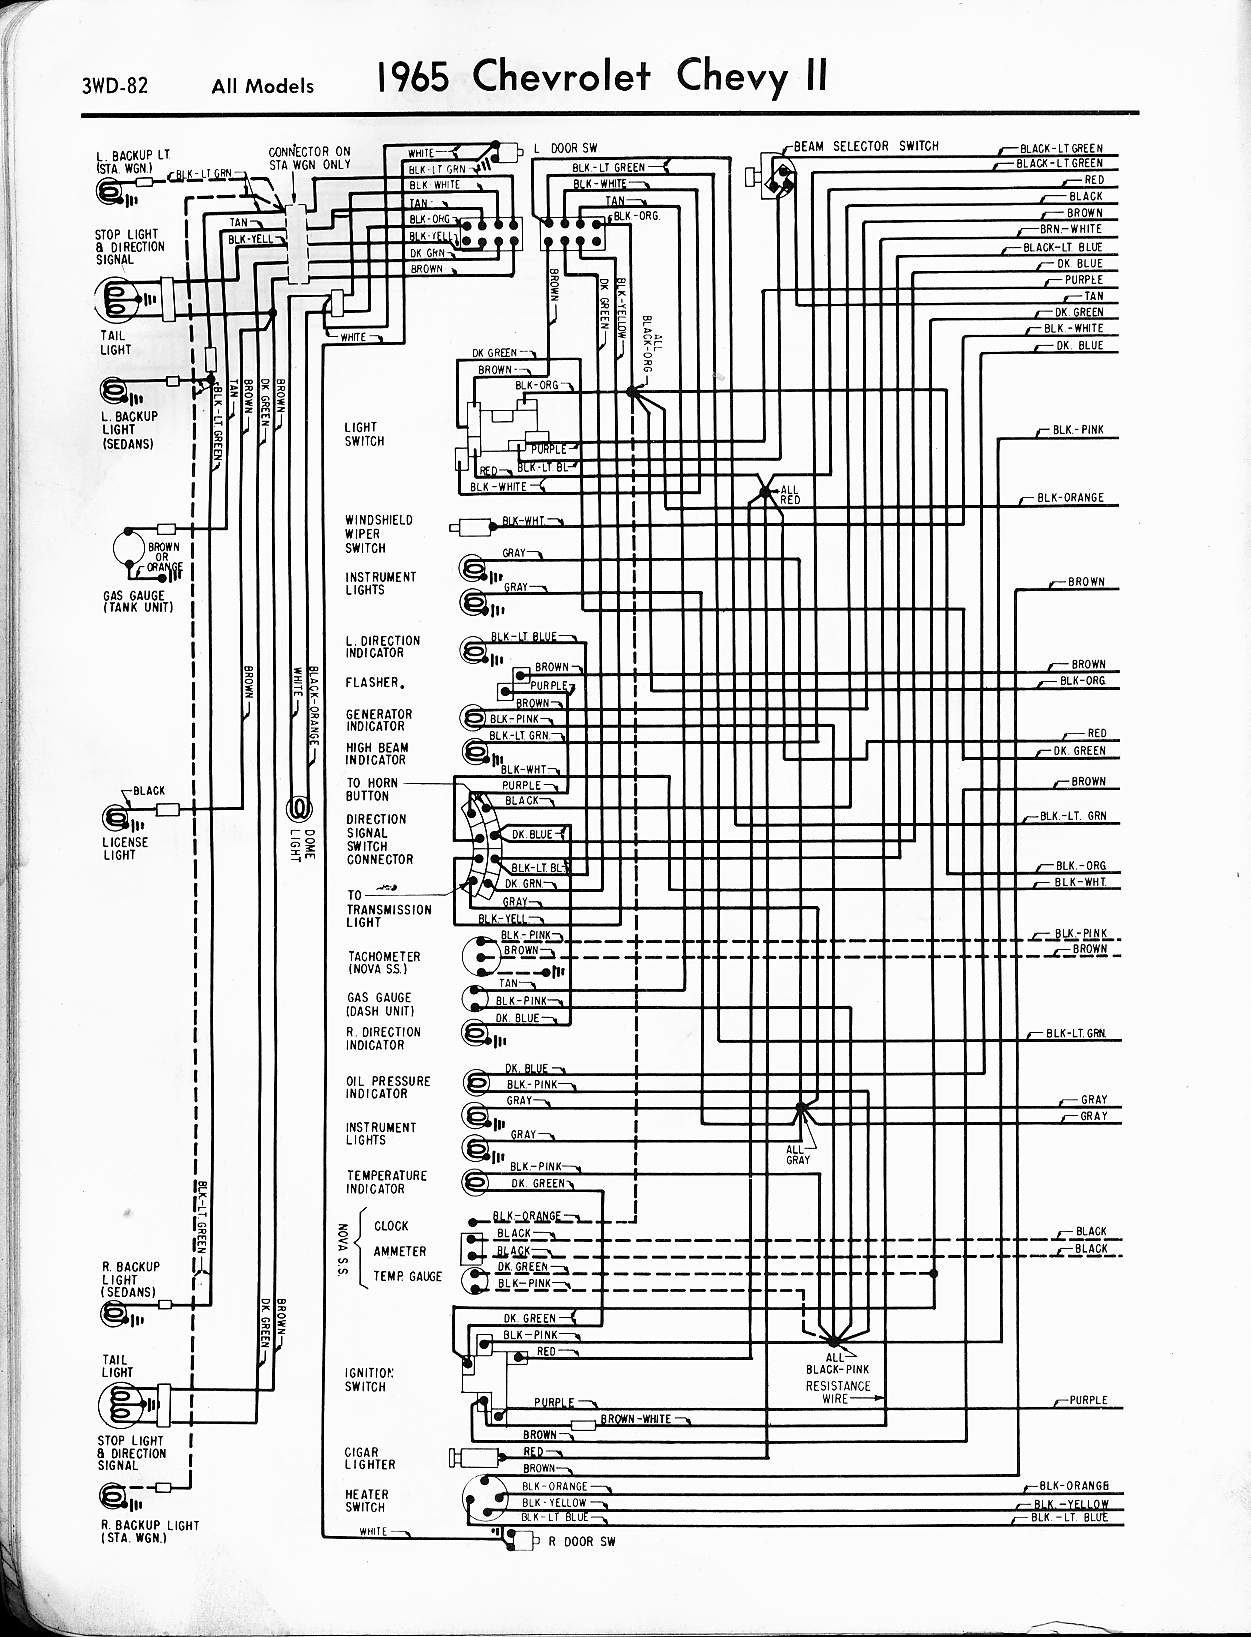 1965 Malibu Wiring Diagram Archive Of Automotive Chevy Diagrams Rh Wizard Com